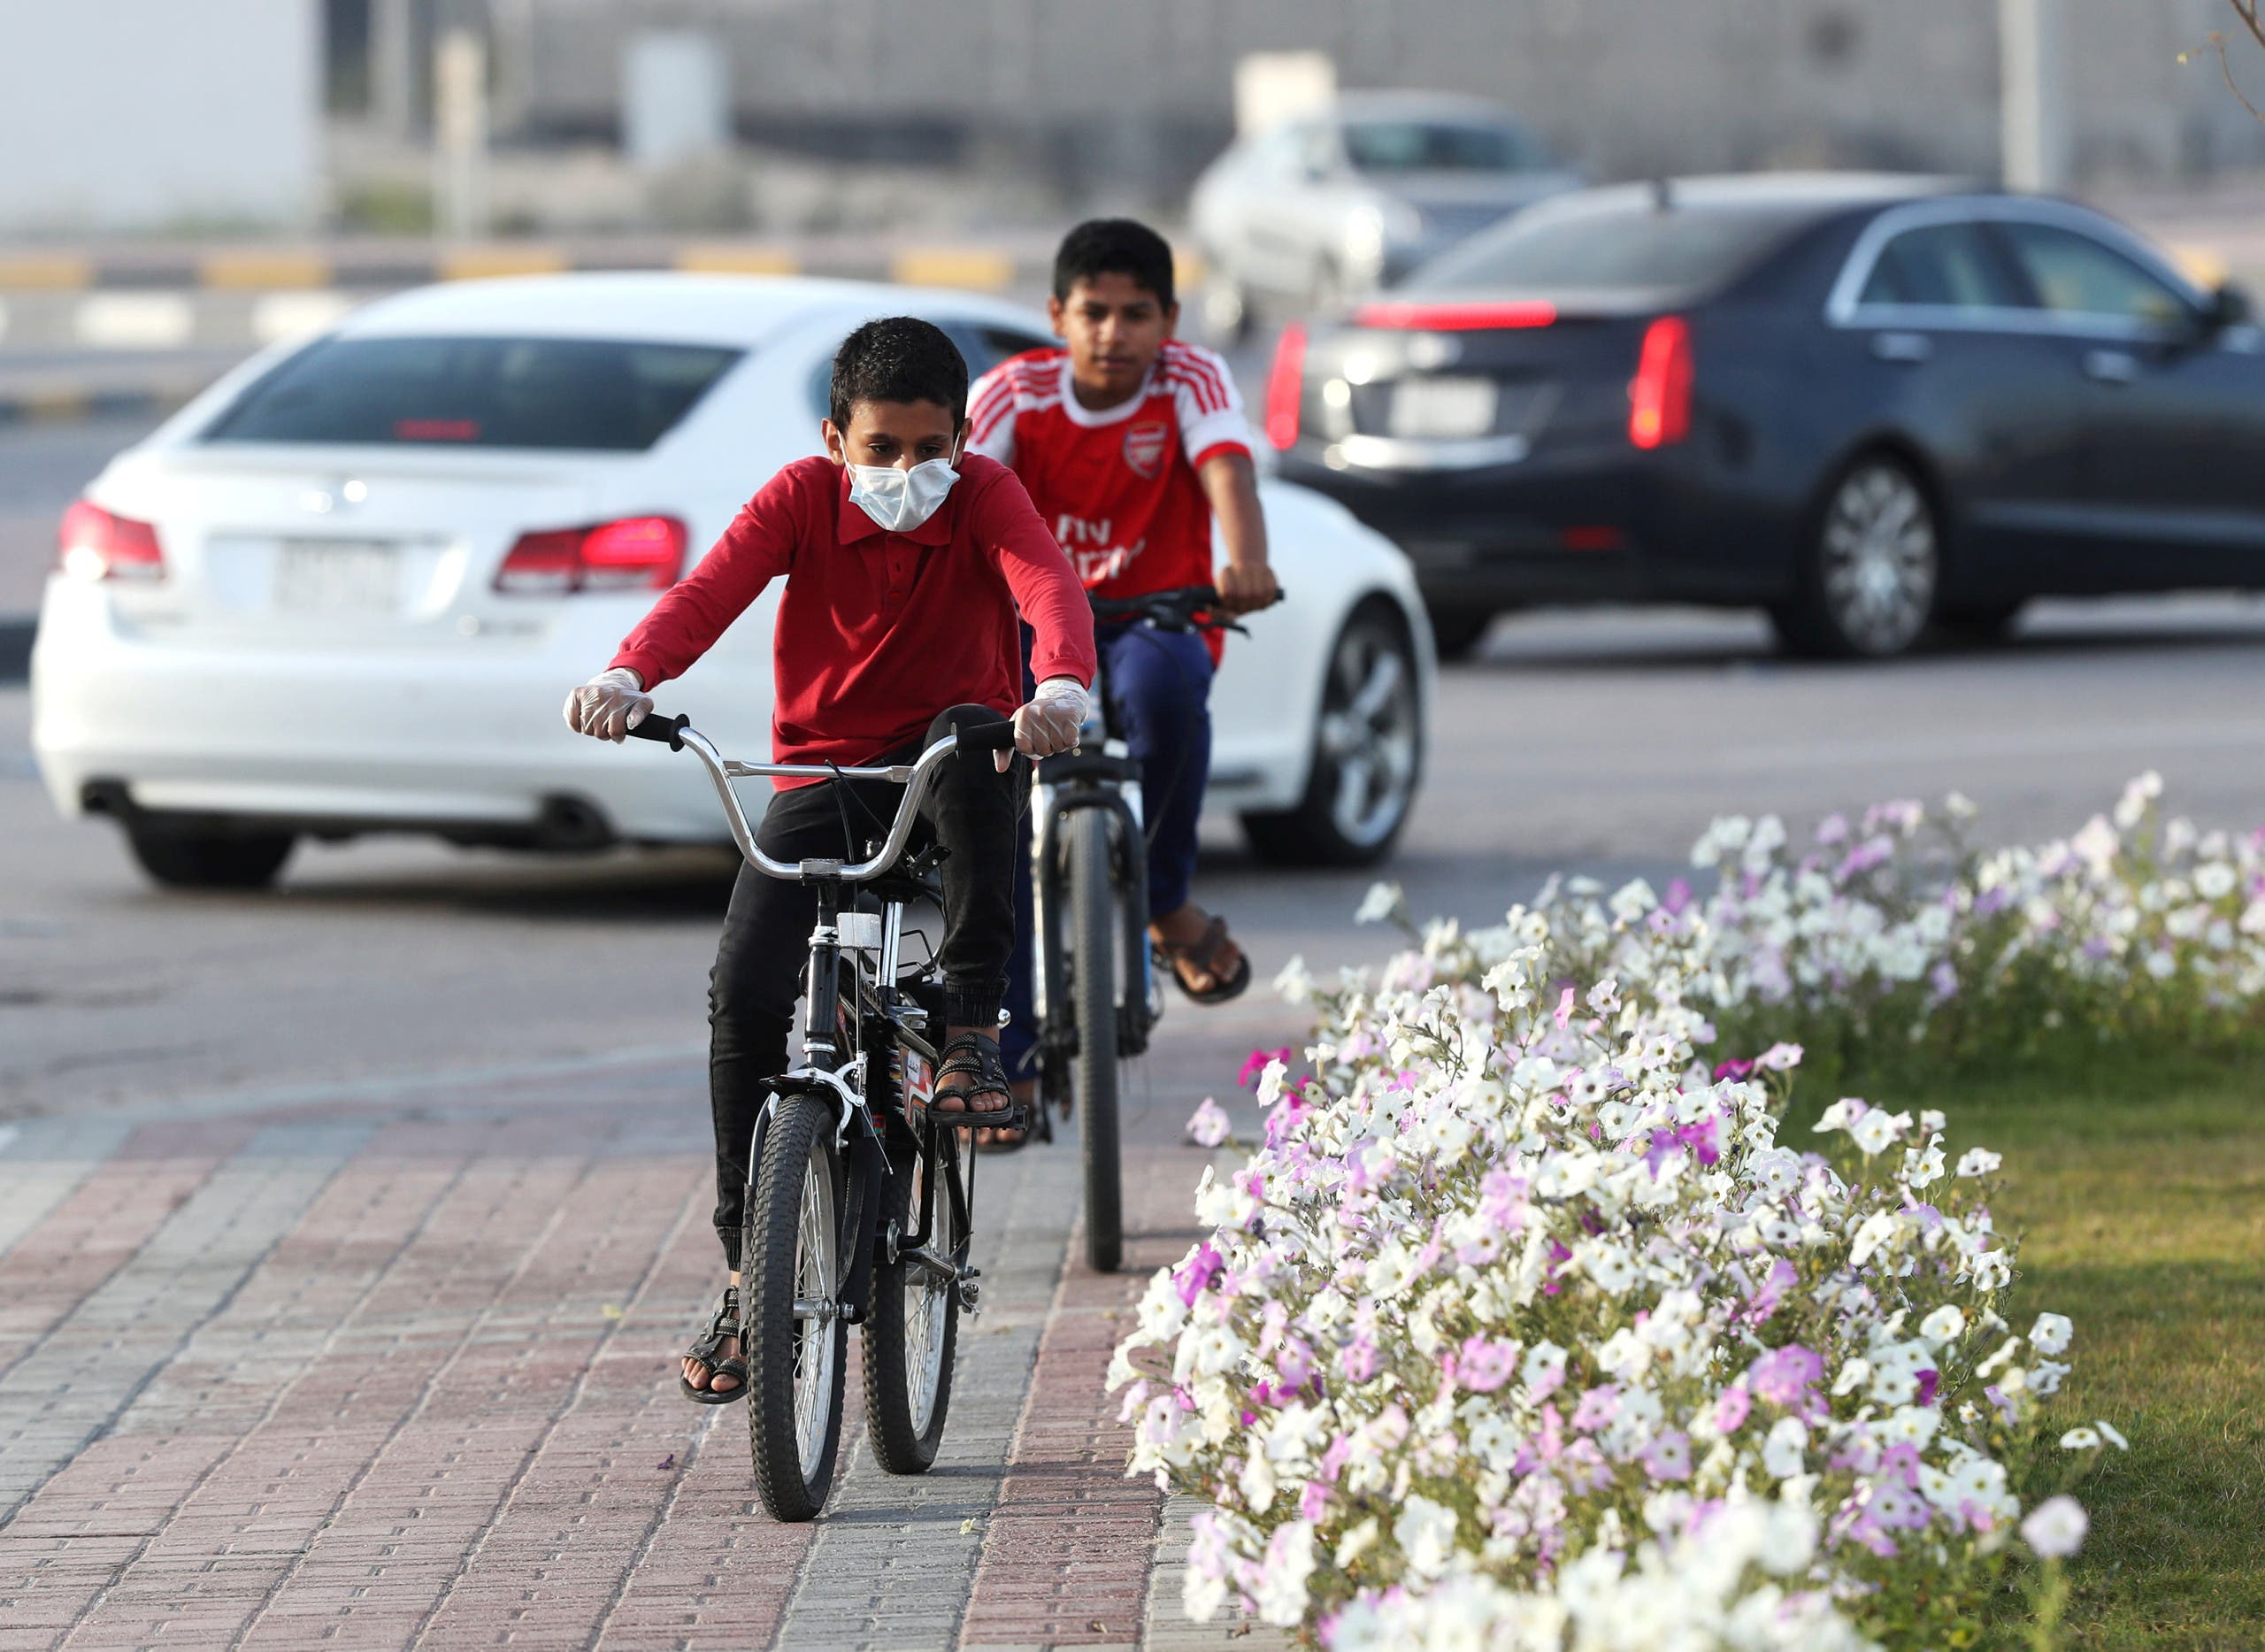 A boy wears a protective face mask, as he rides a bicycle, after Saudi Arabia imposed a temporary lockdown on the province of Qatif, following the spread of coronavirus, in Qatif, Saudi Arabia. (File photo: Reuters)